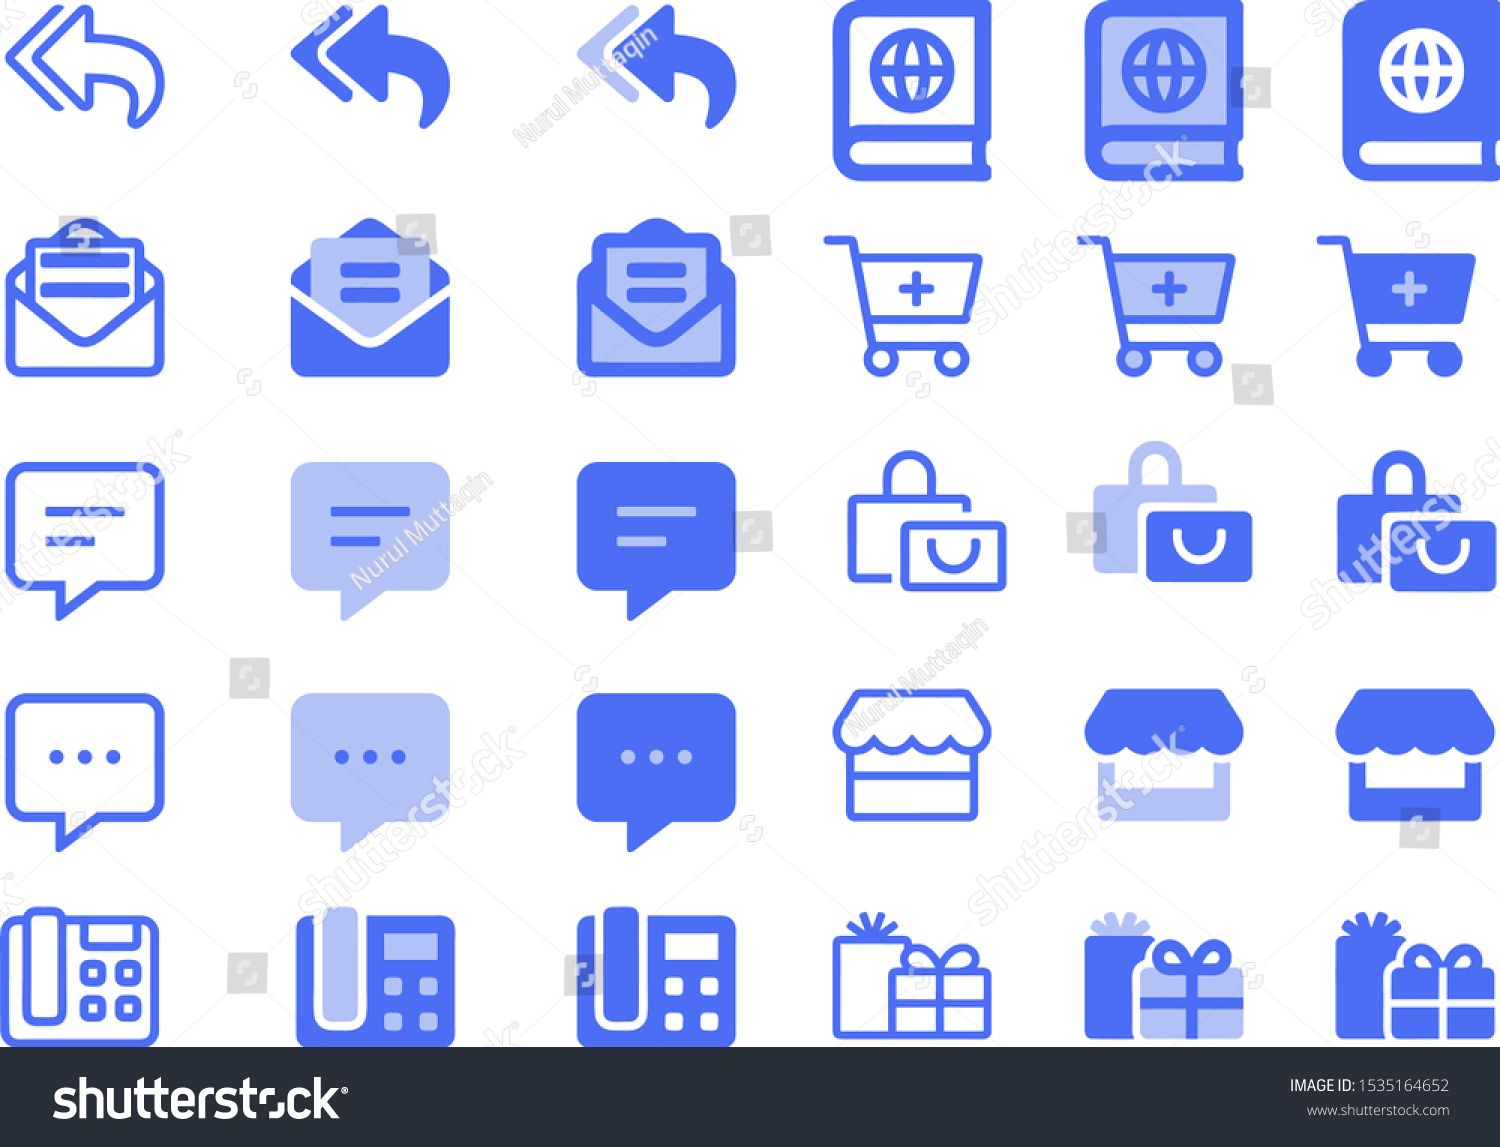 Icon Packs For Your Business Needs Such As Advertising Banner Sites Promotions Websites Mobile Applications Etc Banner Advertising Find Icons Icon Pack